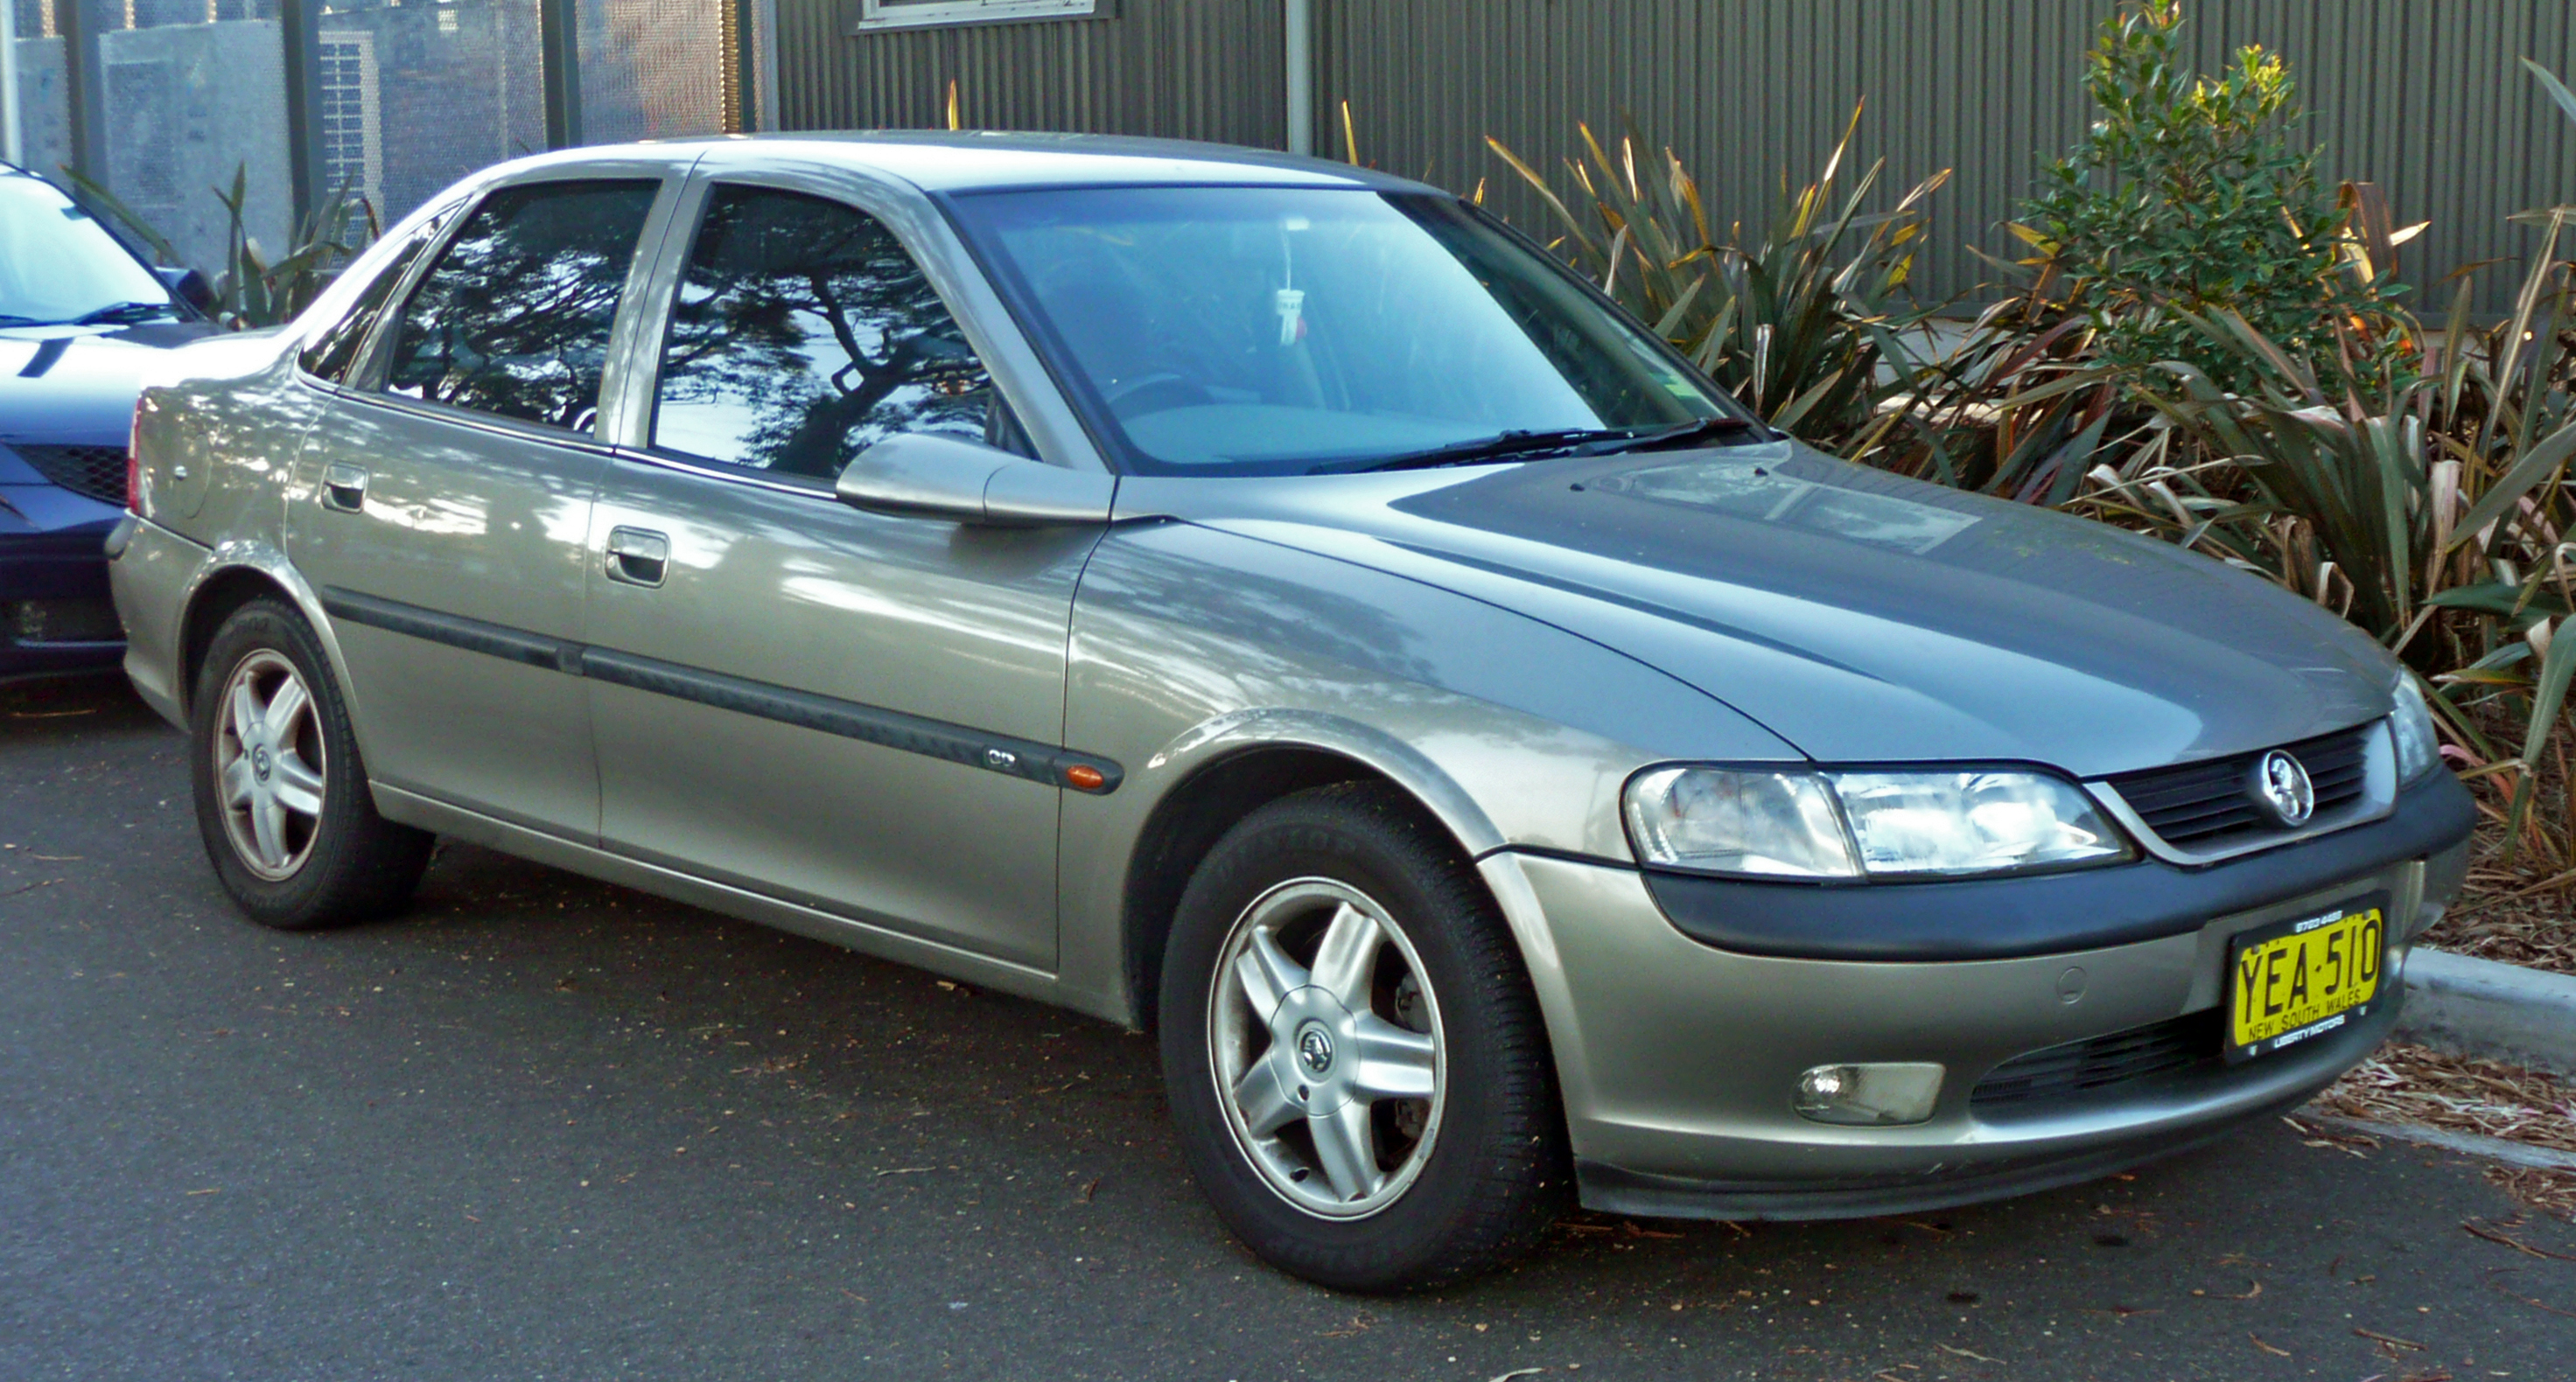 Cars holden vectra hatcback (b) 2011